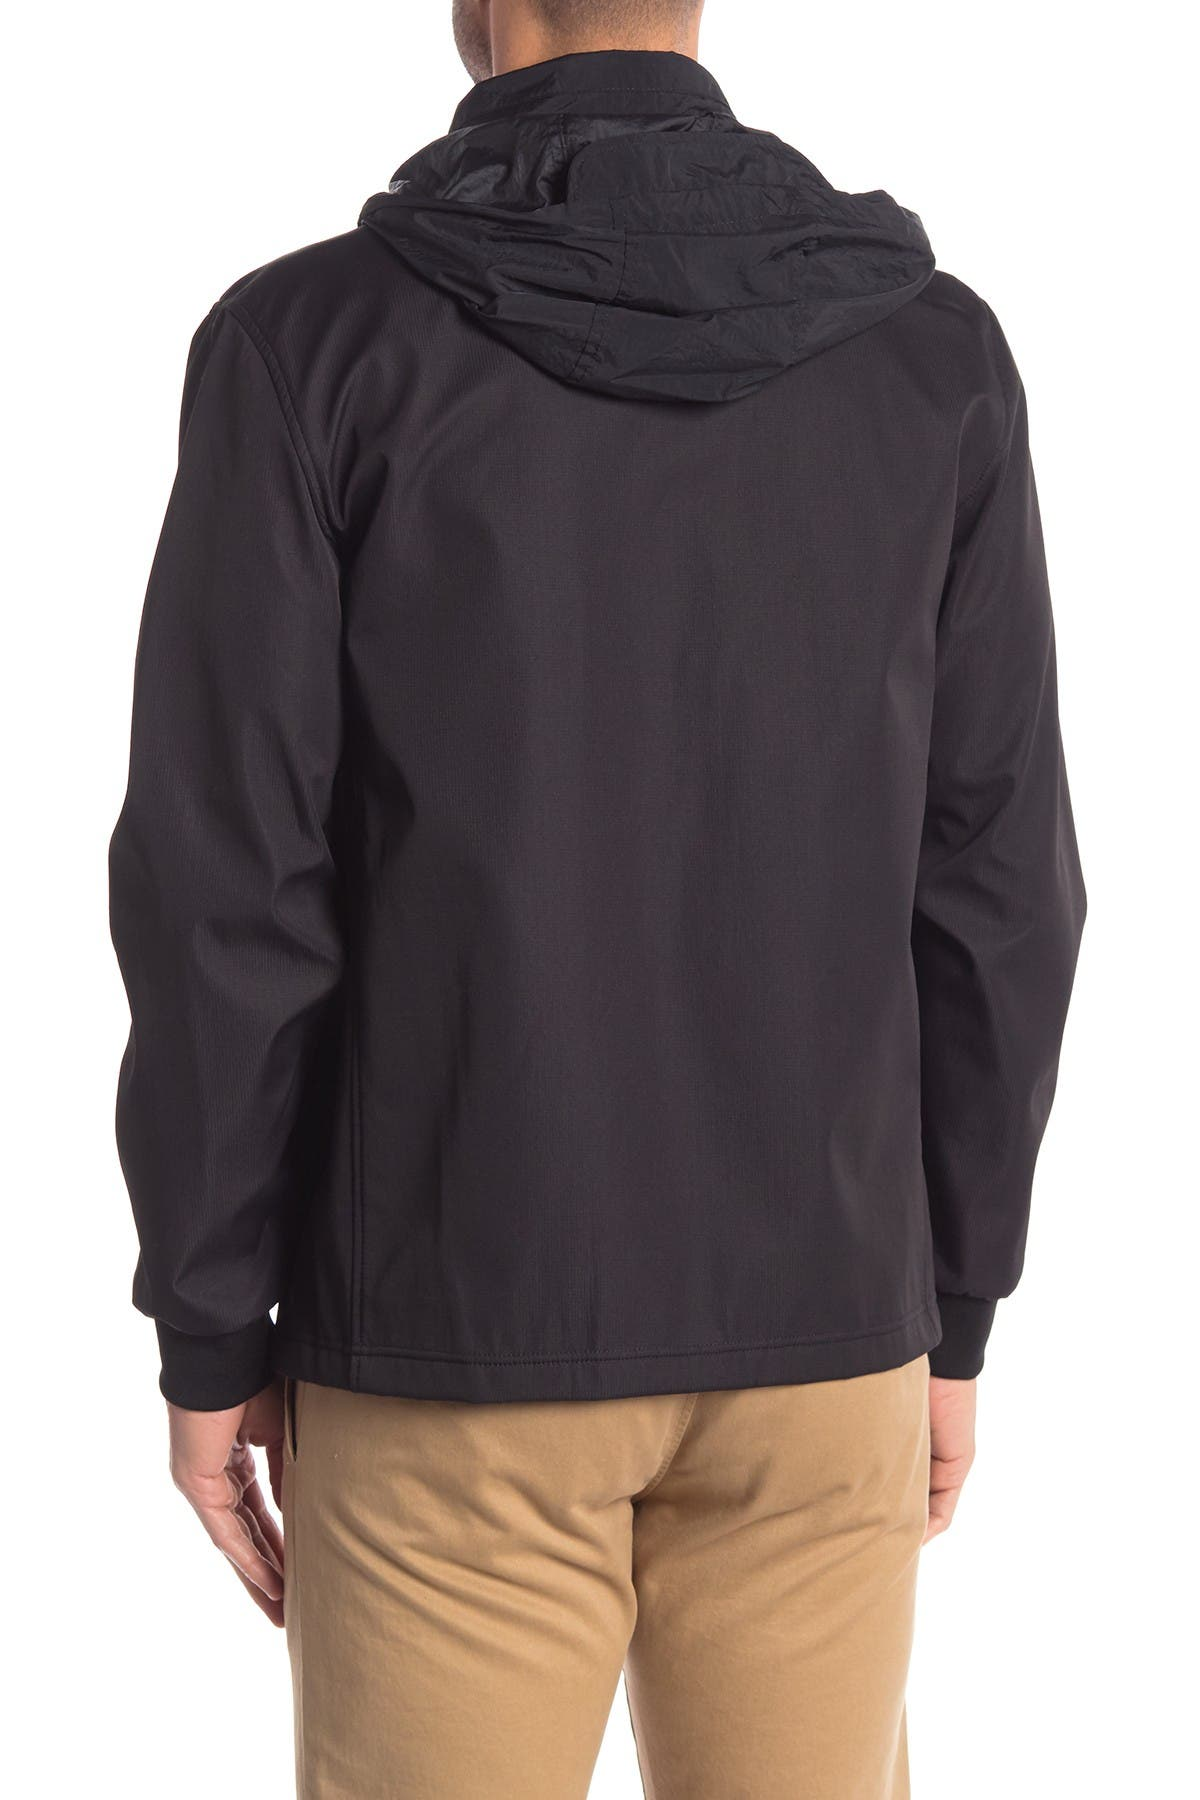 Image of Cole Haan Zip Front Soft Shell Jacket